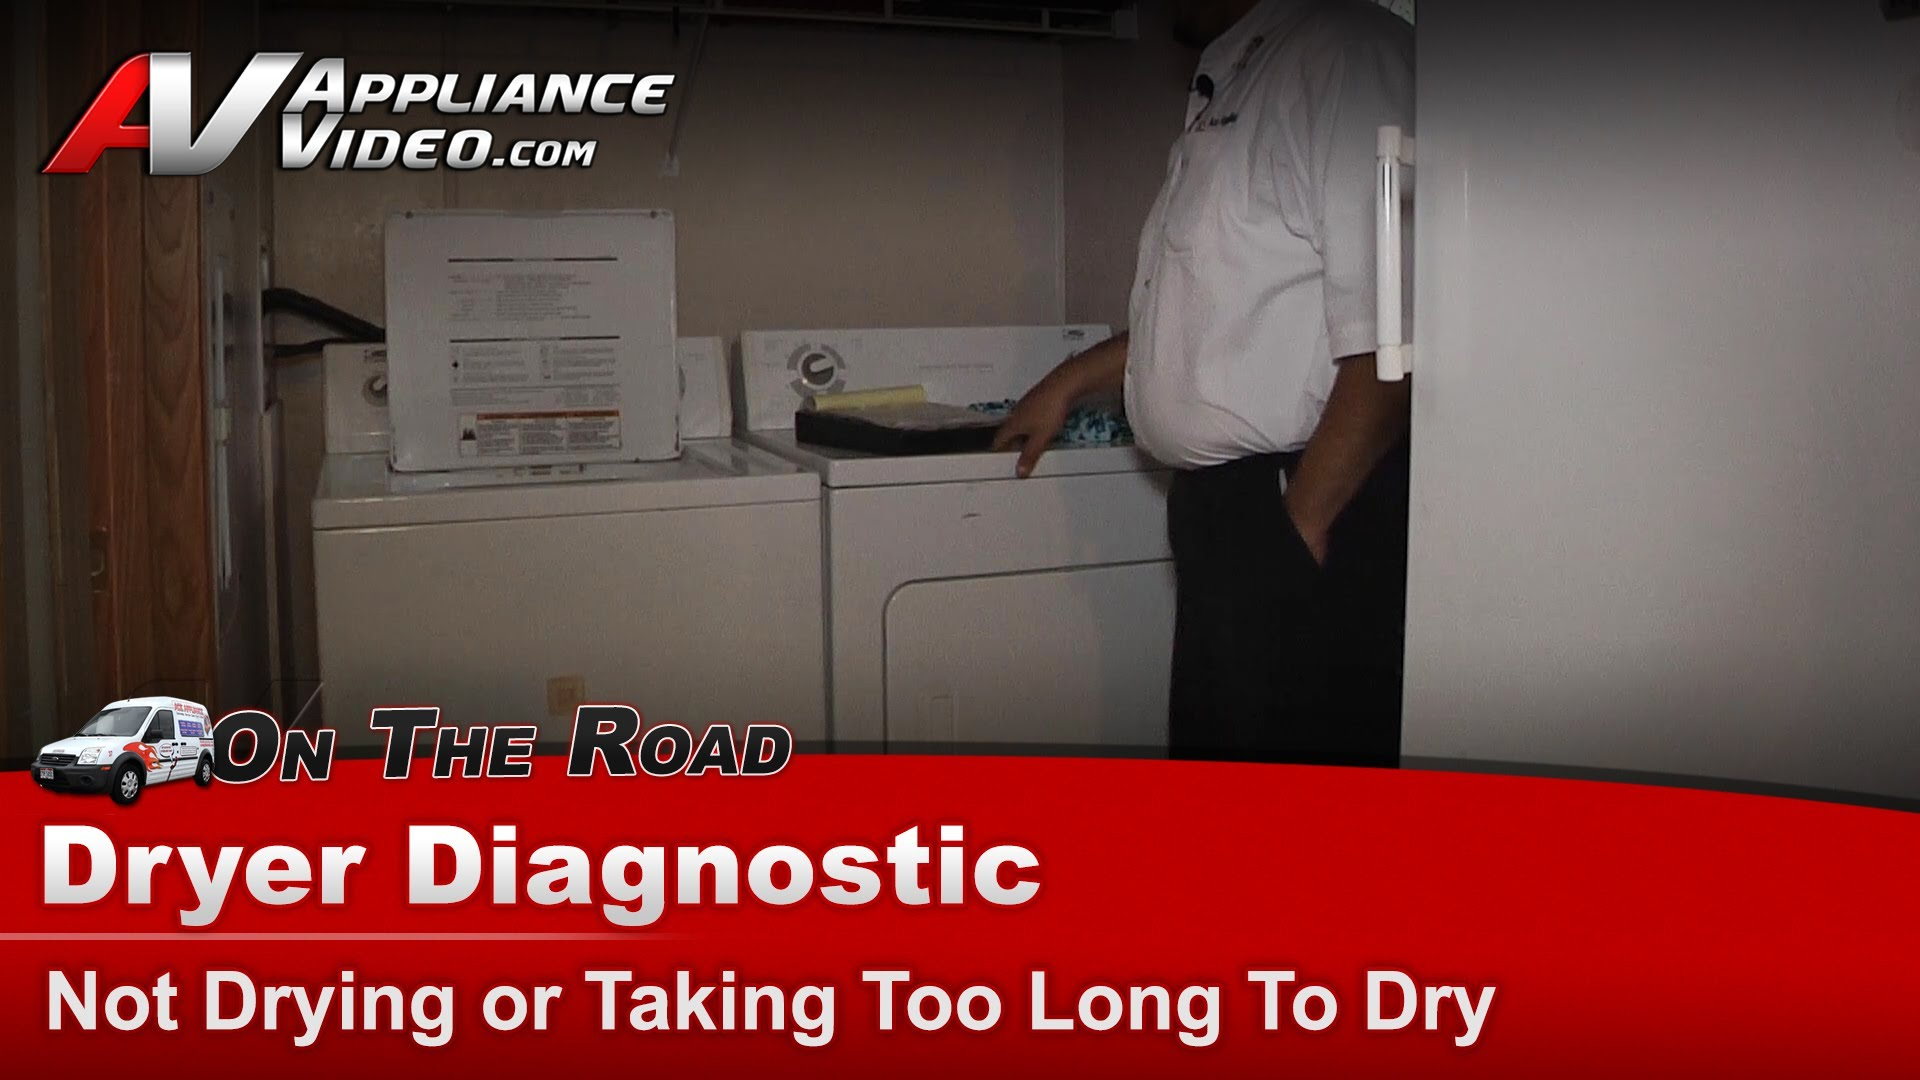 Inspirational Repair Not Drying Or Taking Dryer Not Drying Maytag Dryer Not Drying But Hot Repair Not Drying Or Taking Toolong To Dry Appliance Video E Dryer Diagnostic E Dryer Diagnostic houzz 01 Dryer Not Drying